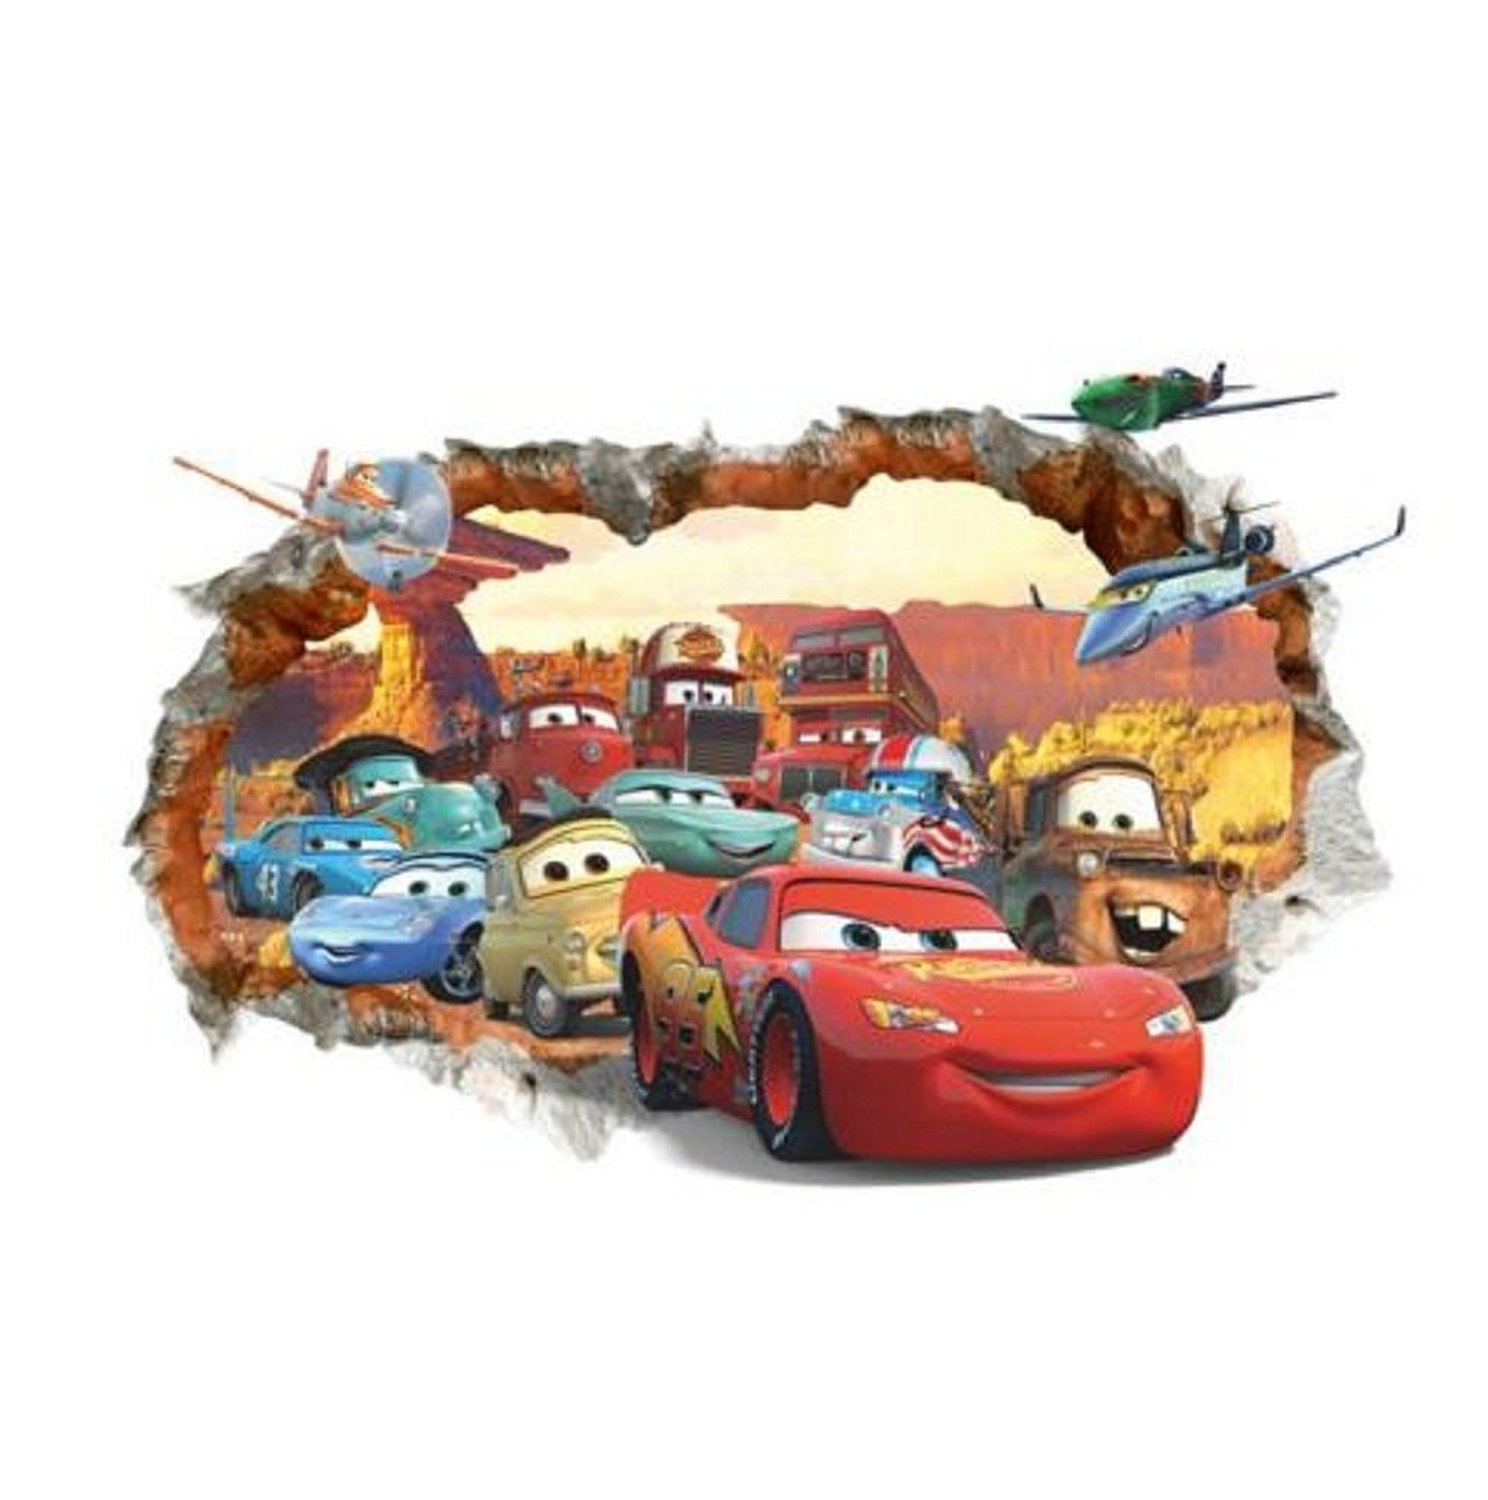 Cheap Cars 2 Movie Posters Find Cars 2 Movie Posters Deals On